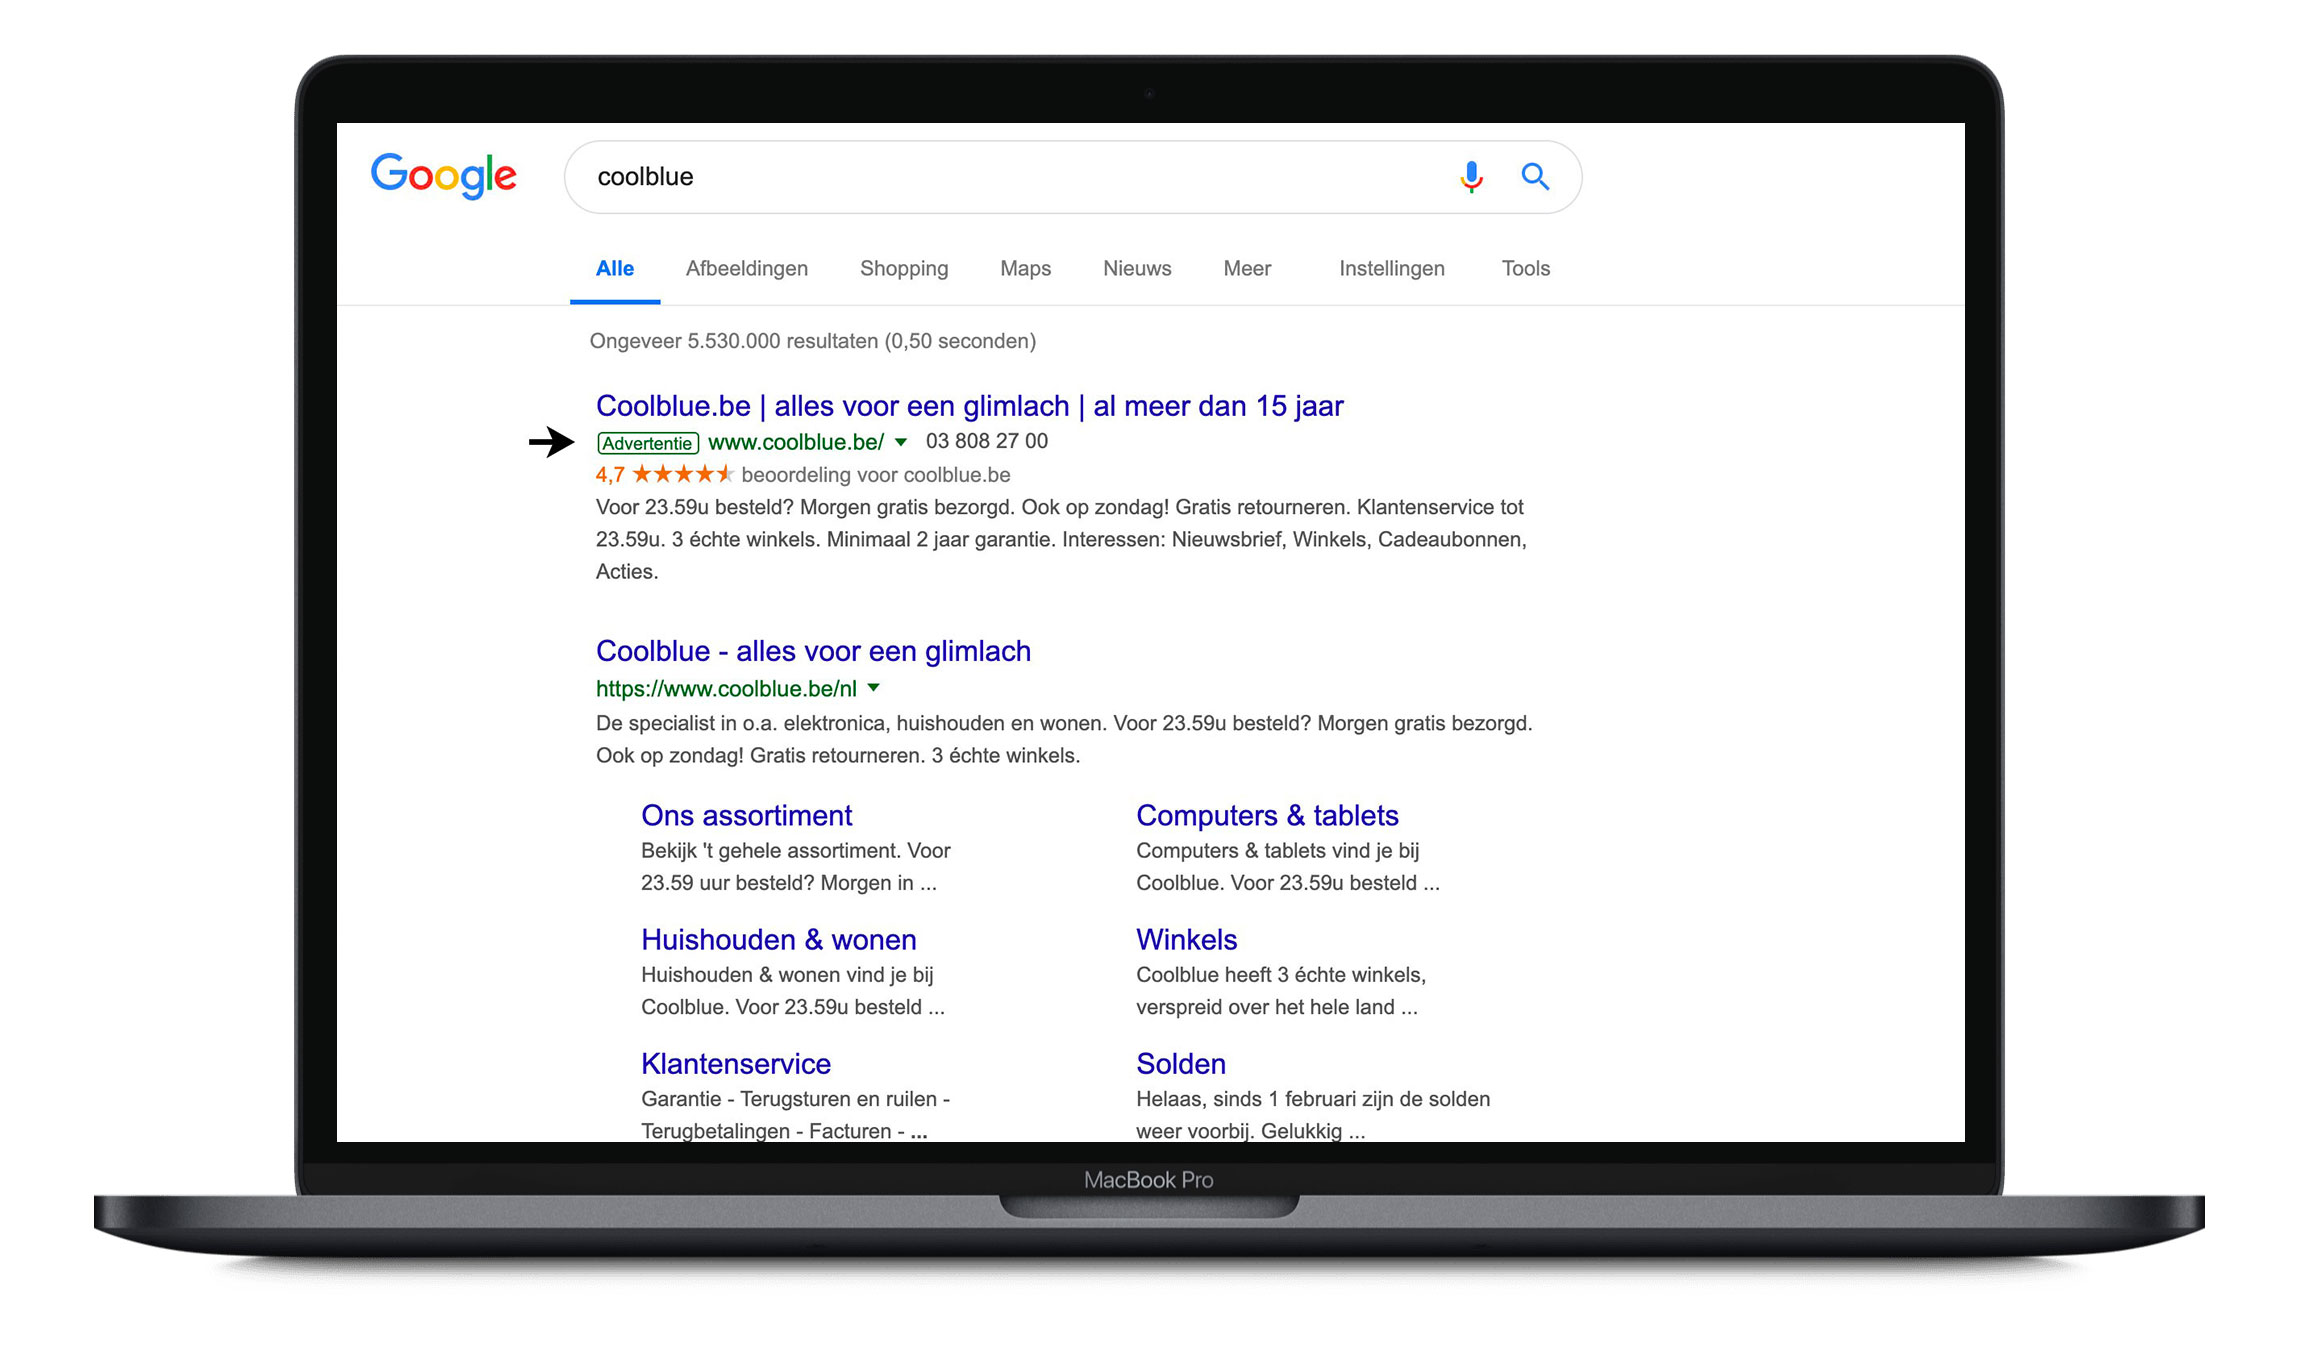 Google ads example coolblue.be